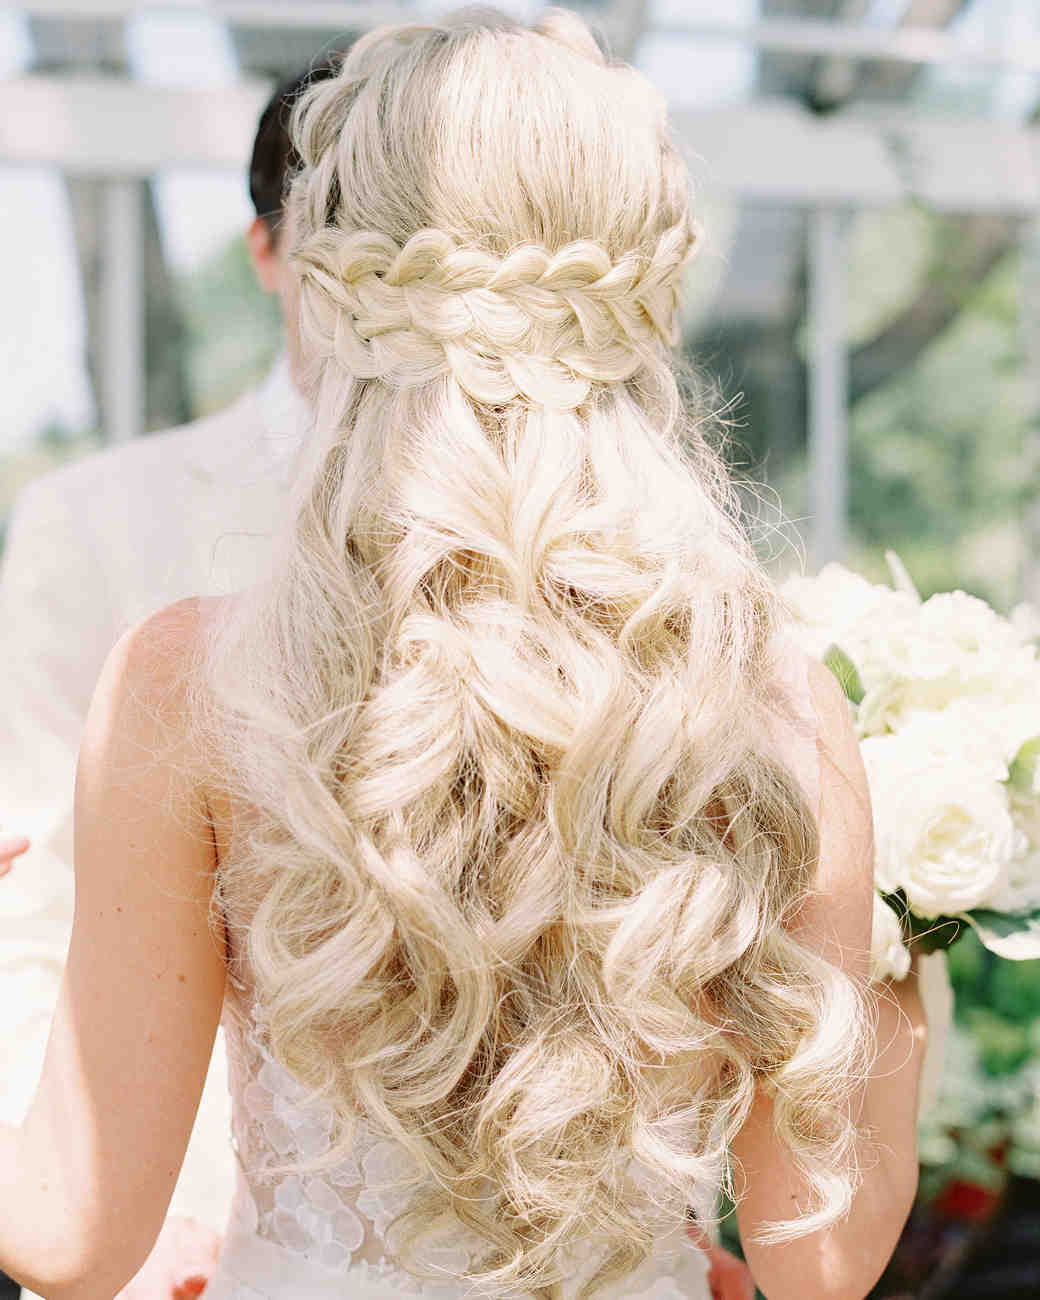 Wedding Hairstyles Photos: 28 Half-Up, Half-Down Wedding Hairstyles We Love